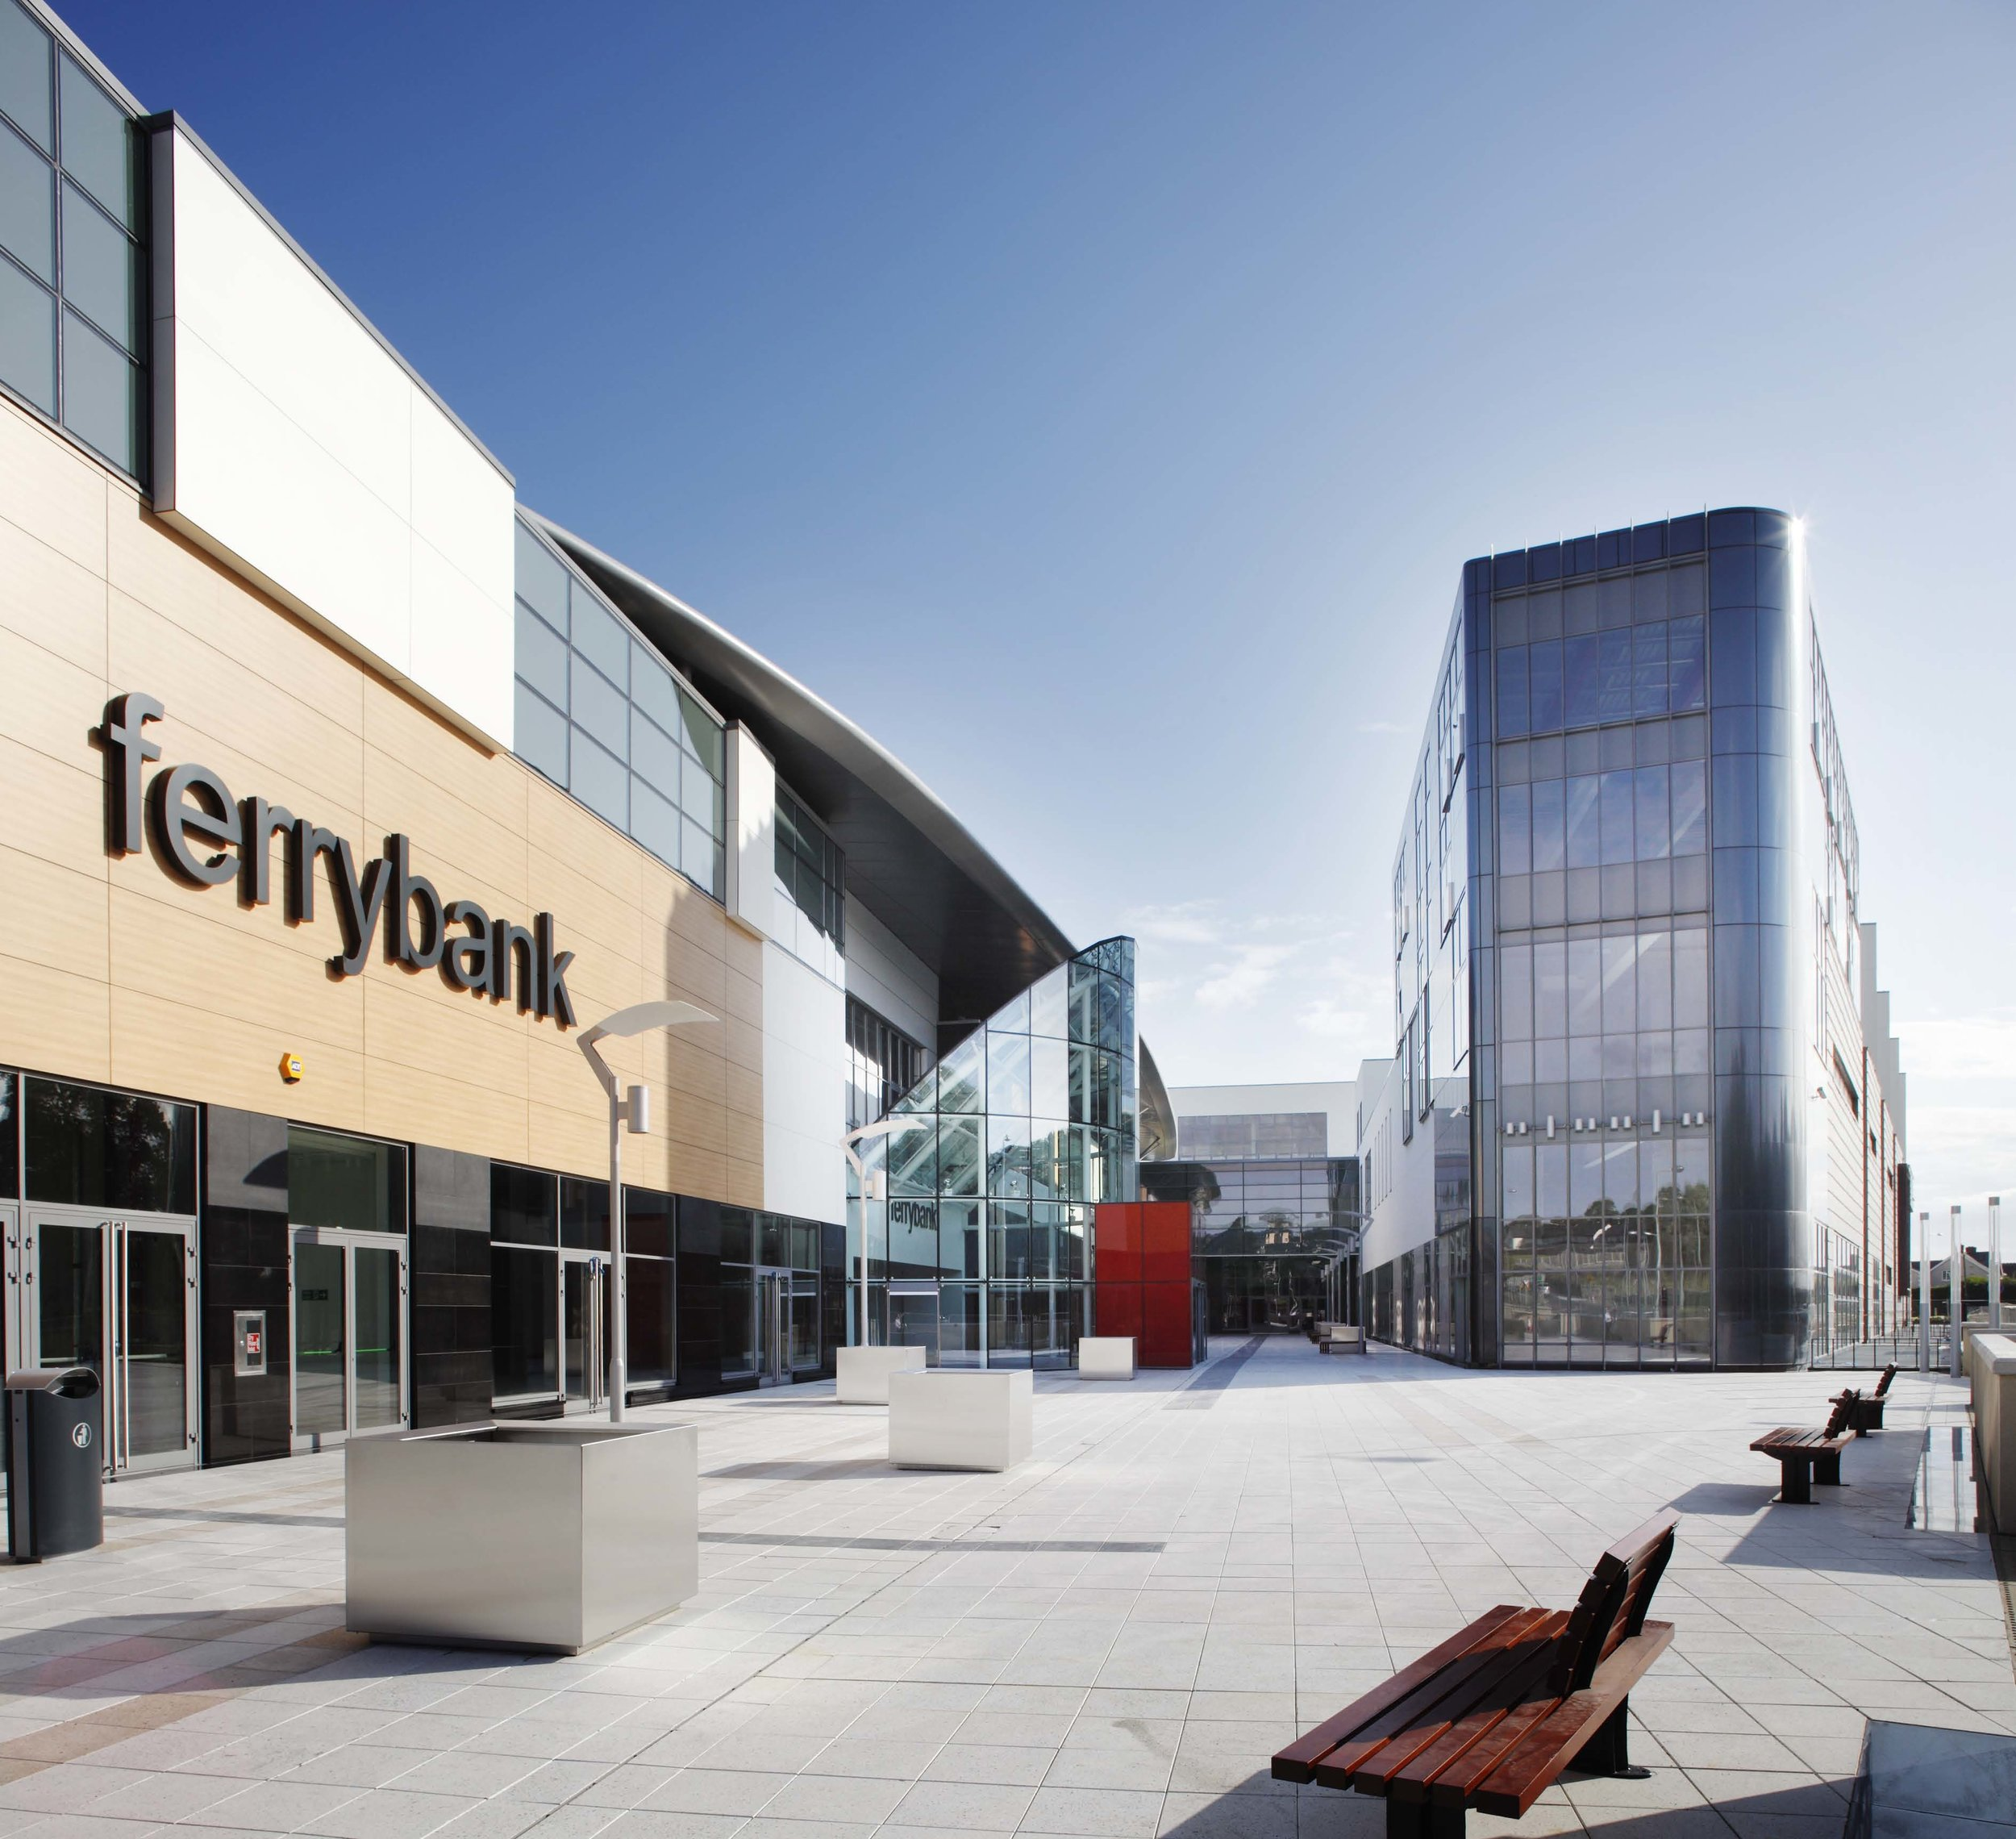 Ferrybank-Shopping-Centre-New-Build.jpg